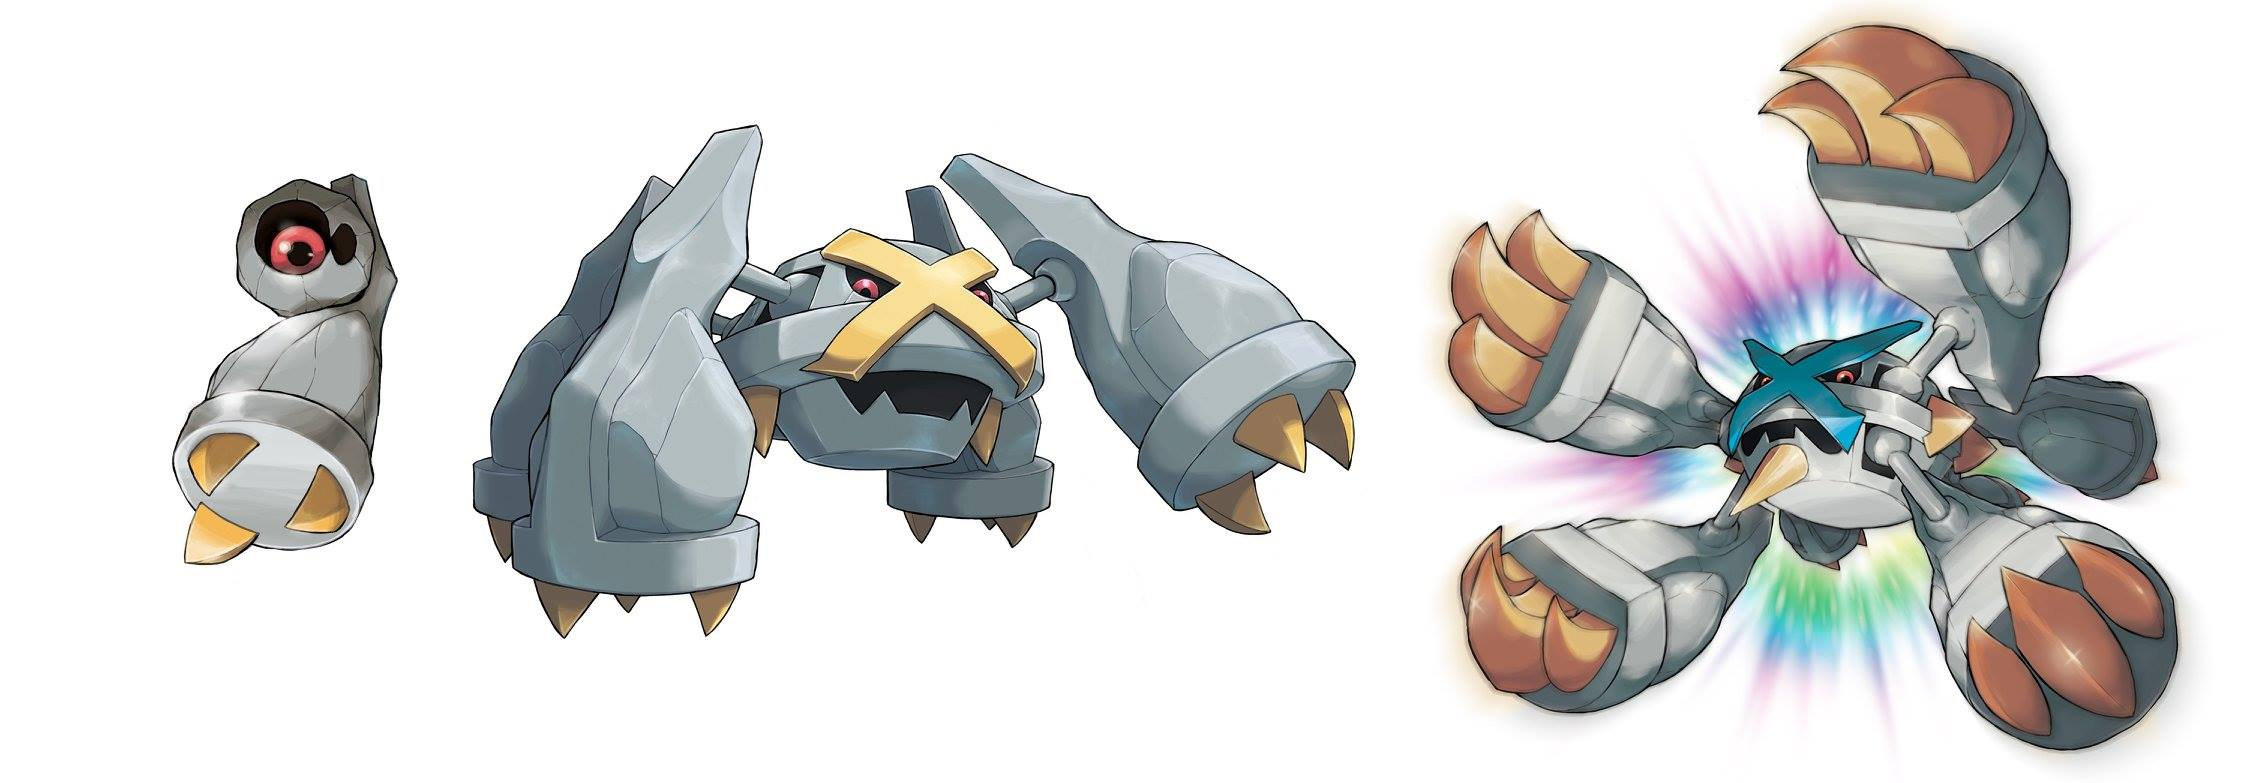 Shiny Beldum Metagrossand Mega Metagross Photo